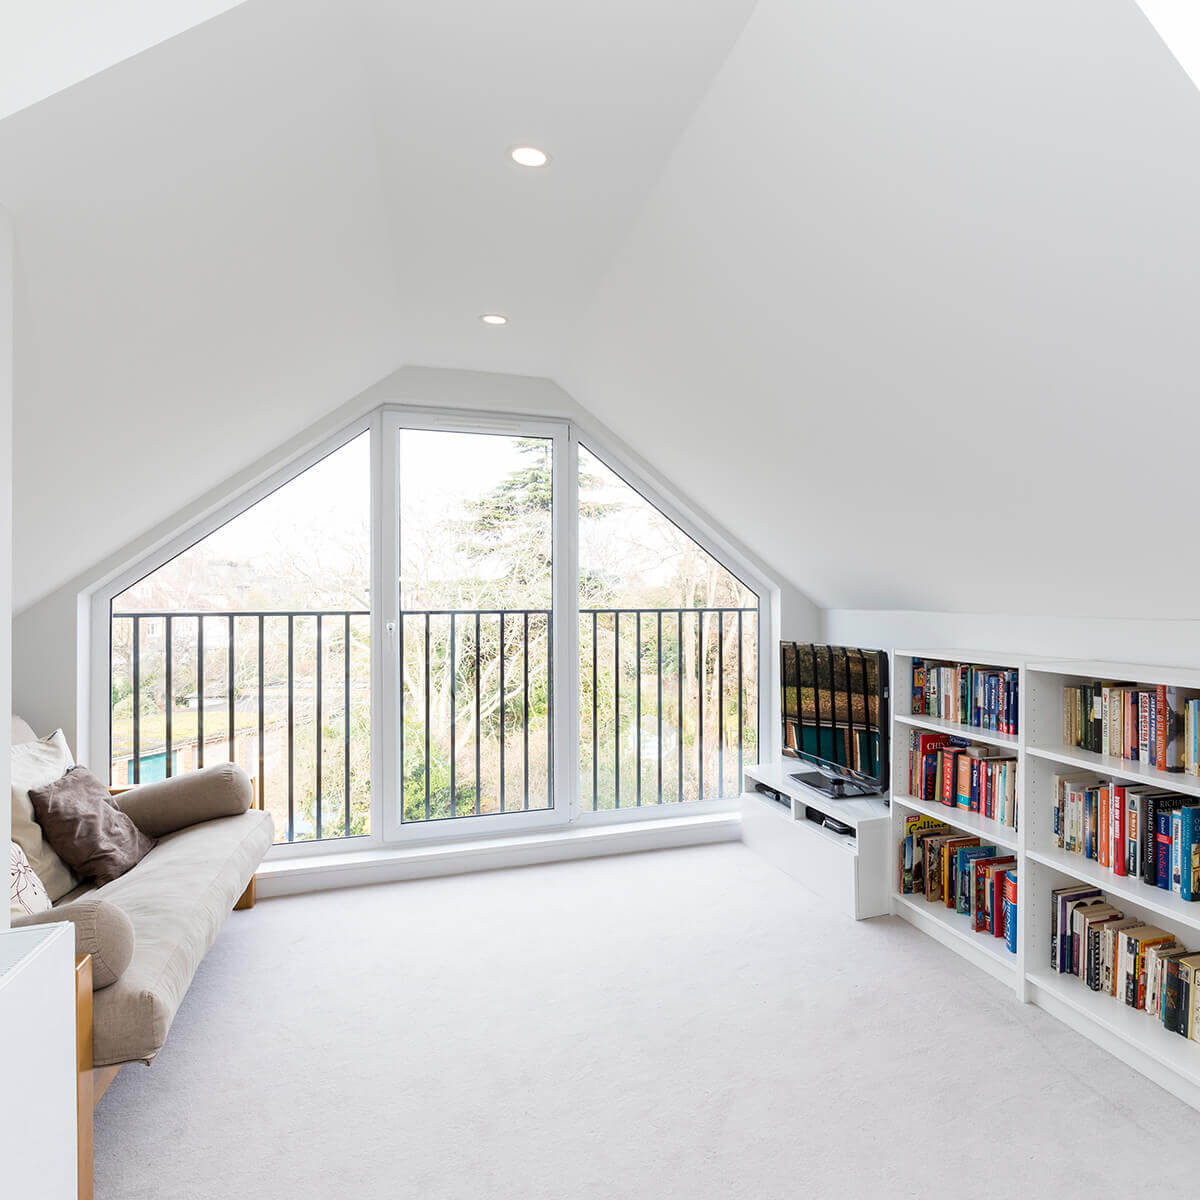 Design Your Own Home Extension: What Are The Benefits Of Loft Conversion, Are Loft Worth